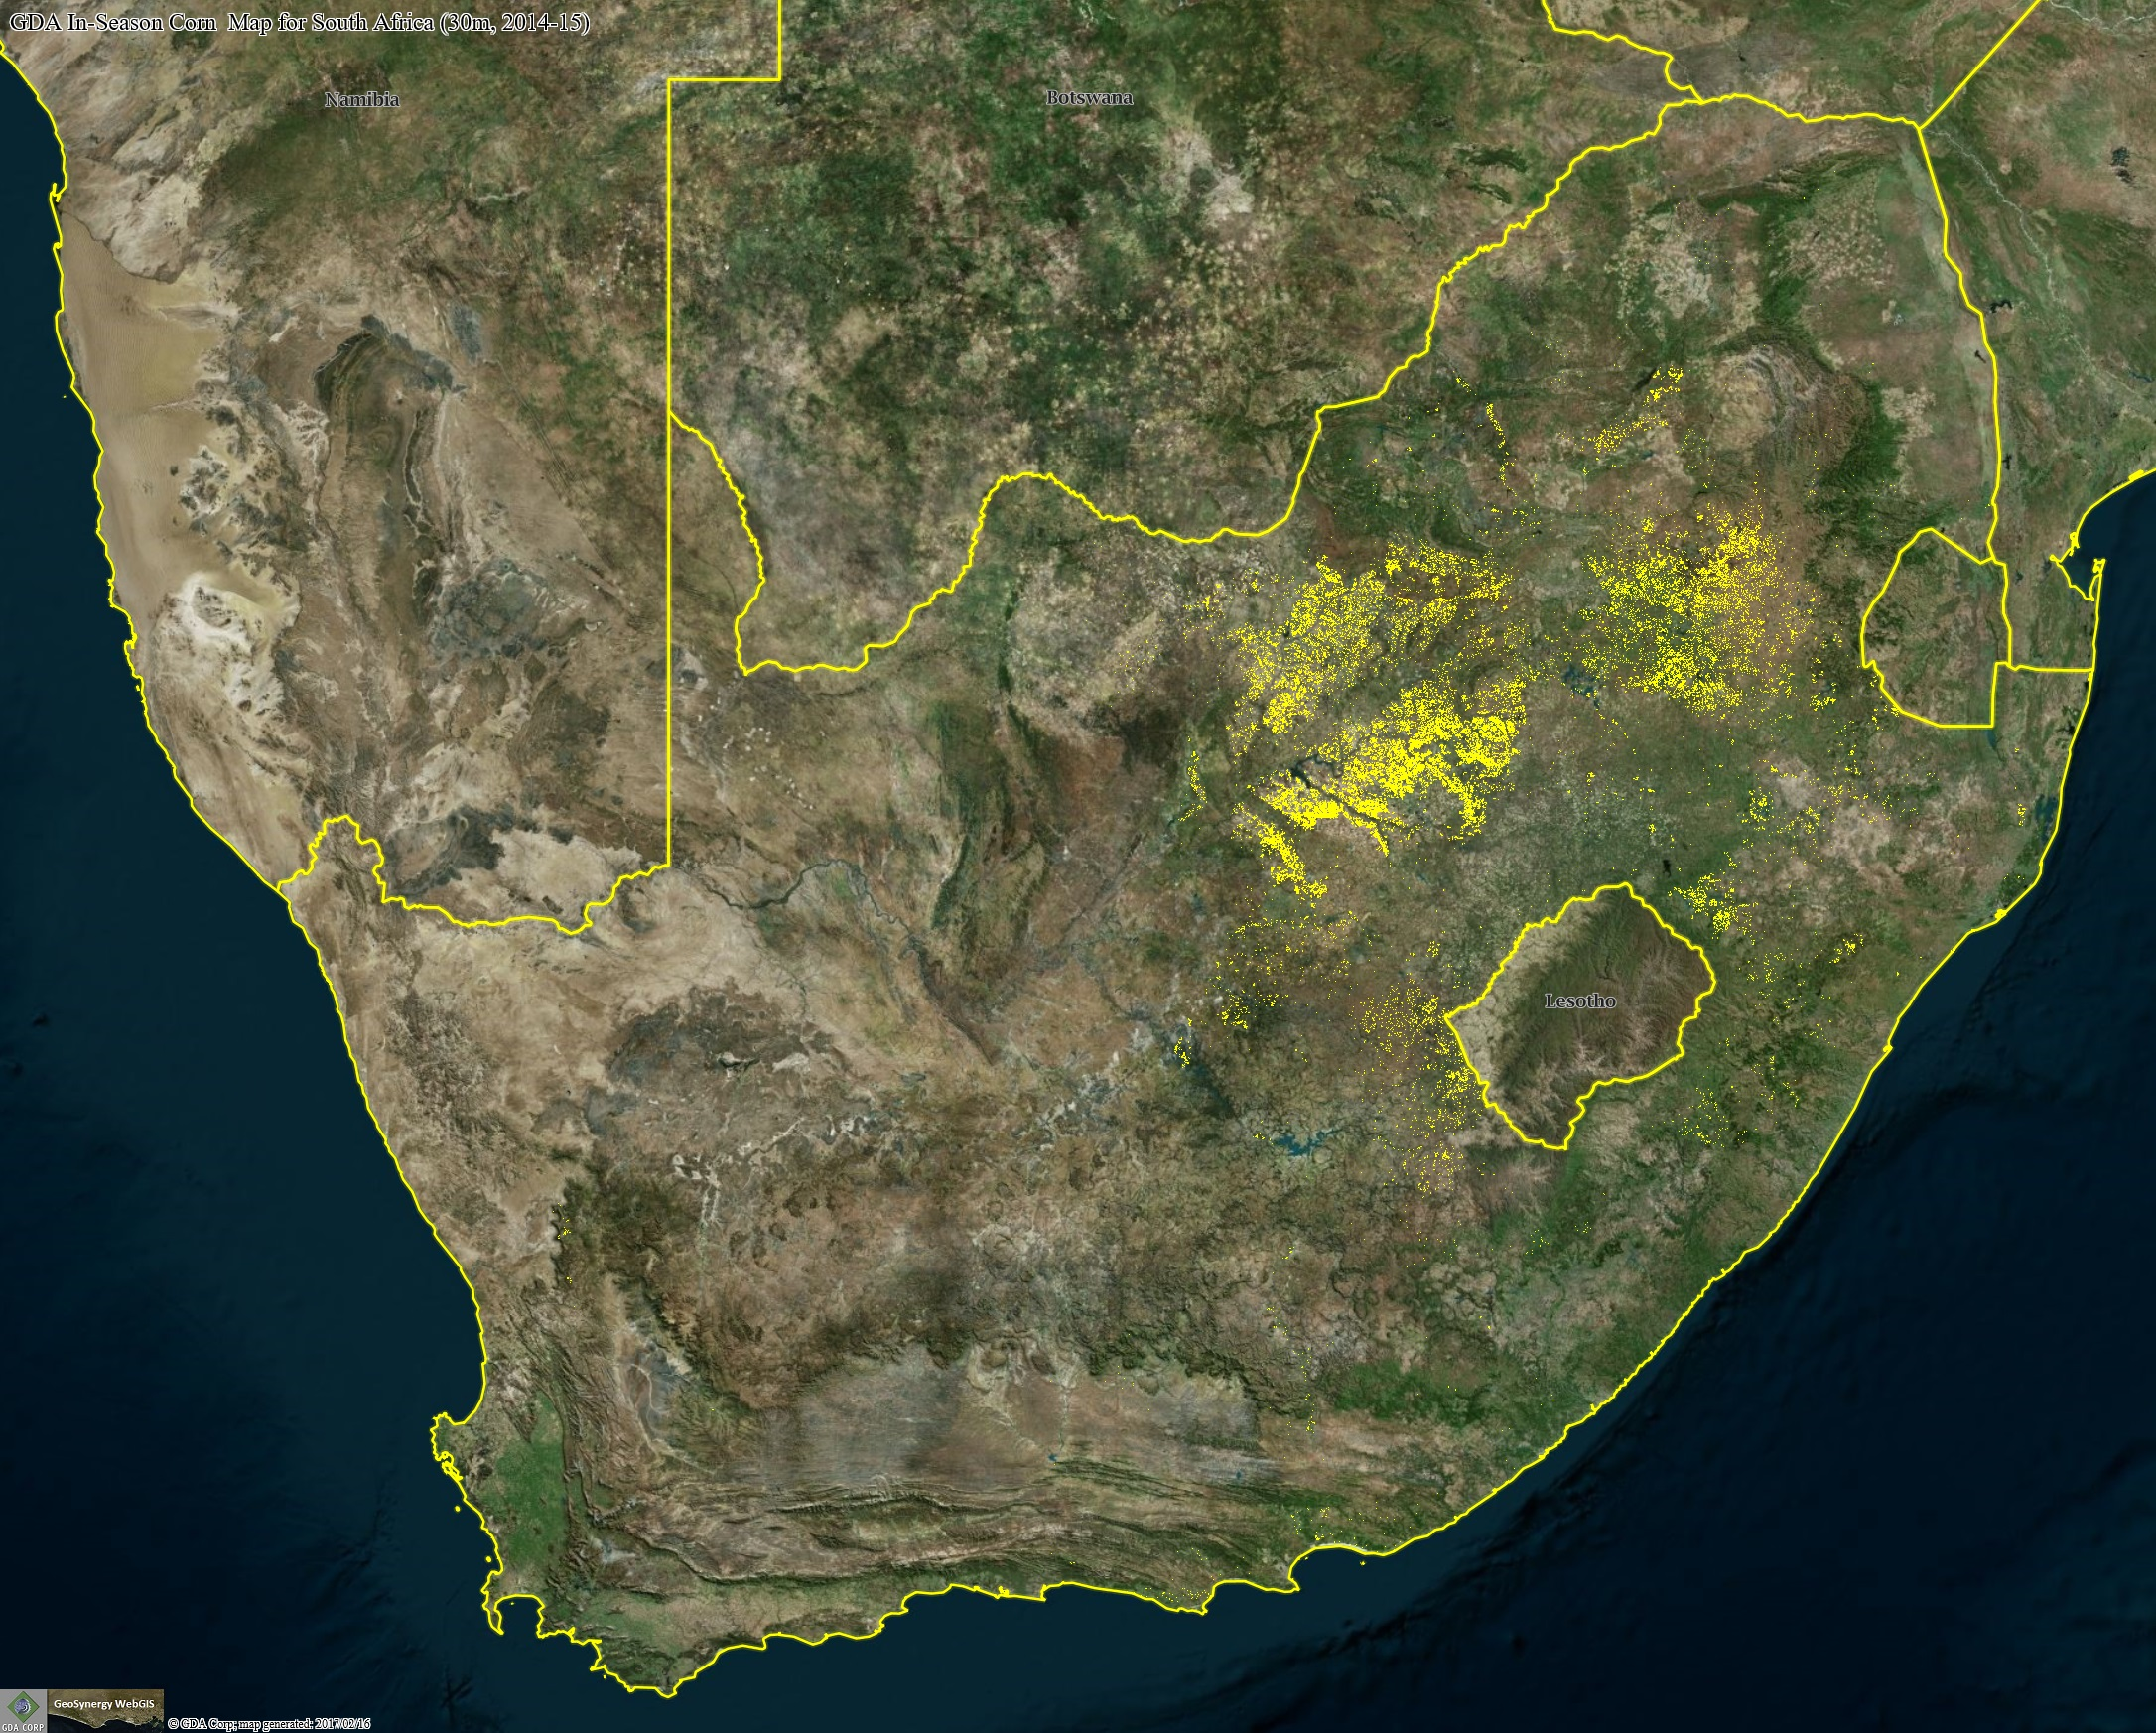 GDA corn map for South Africa draped over the source Landsat mosaic.